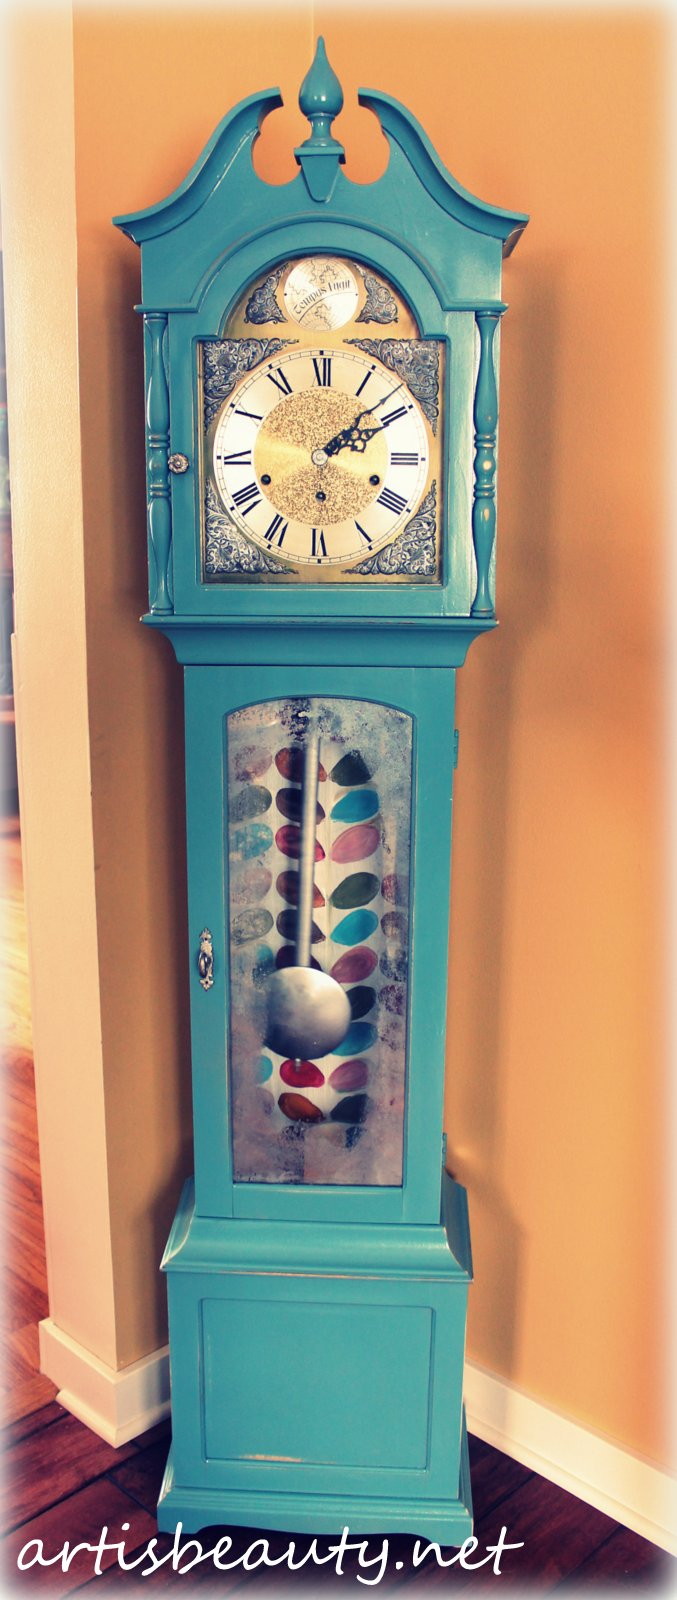 Art Is Beauty Grandmother Clock Reveal Wild And Crazy